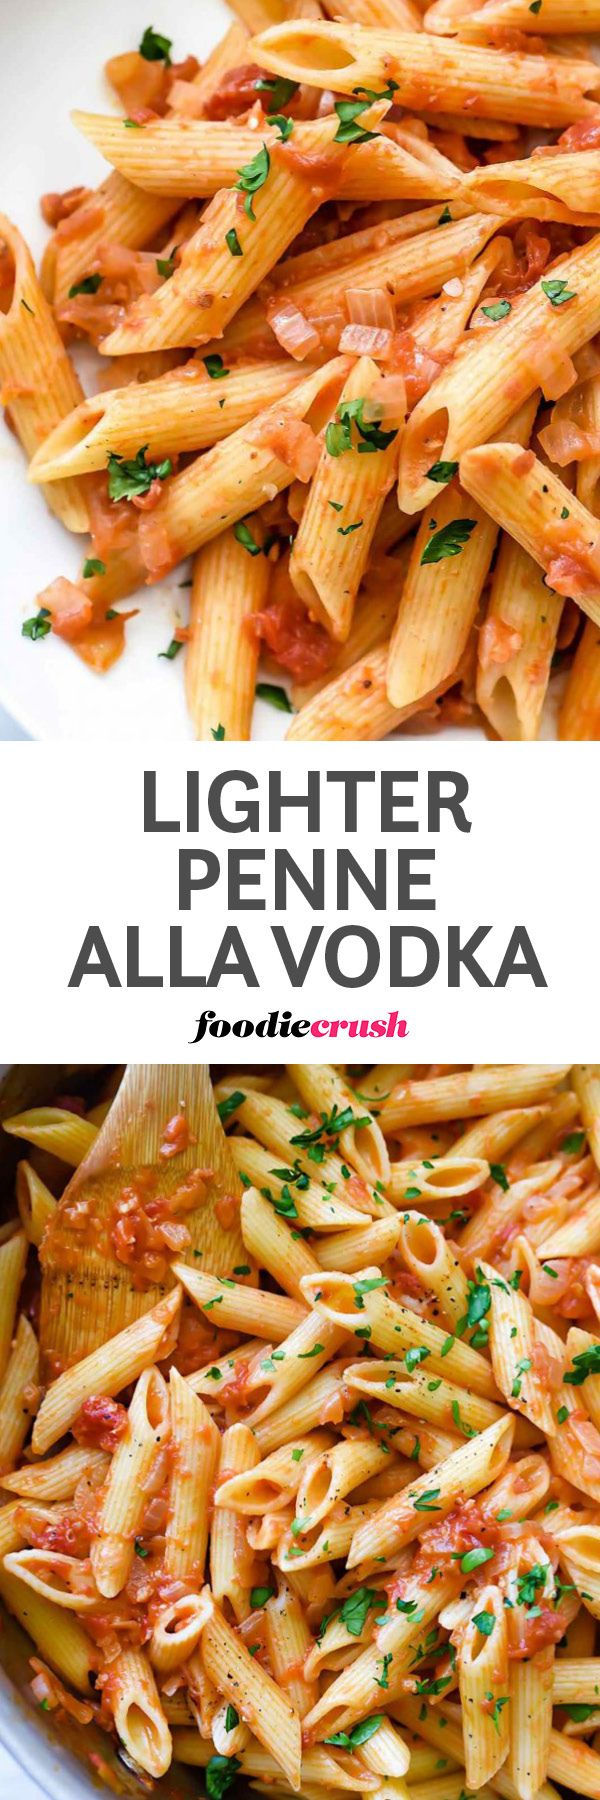 Easy Penne Alla Vodka Pasta Recipe | Almond Milk Recipe | Penne ala Vodka Recipe | Vodka Sauce | Light Pasta Sauce | no cream vodka sauce | Skinny pasta sauce | This classic easy American-Italian penne pasta recipe uses almond milk for a lightened up calorie count that keeps it creamy as a main meal or a tasty side dish. | foodiecrush.com